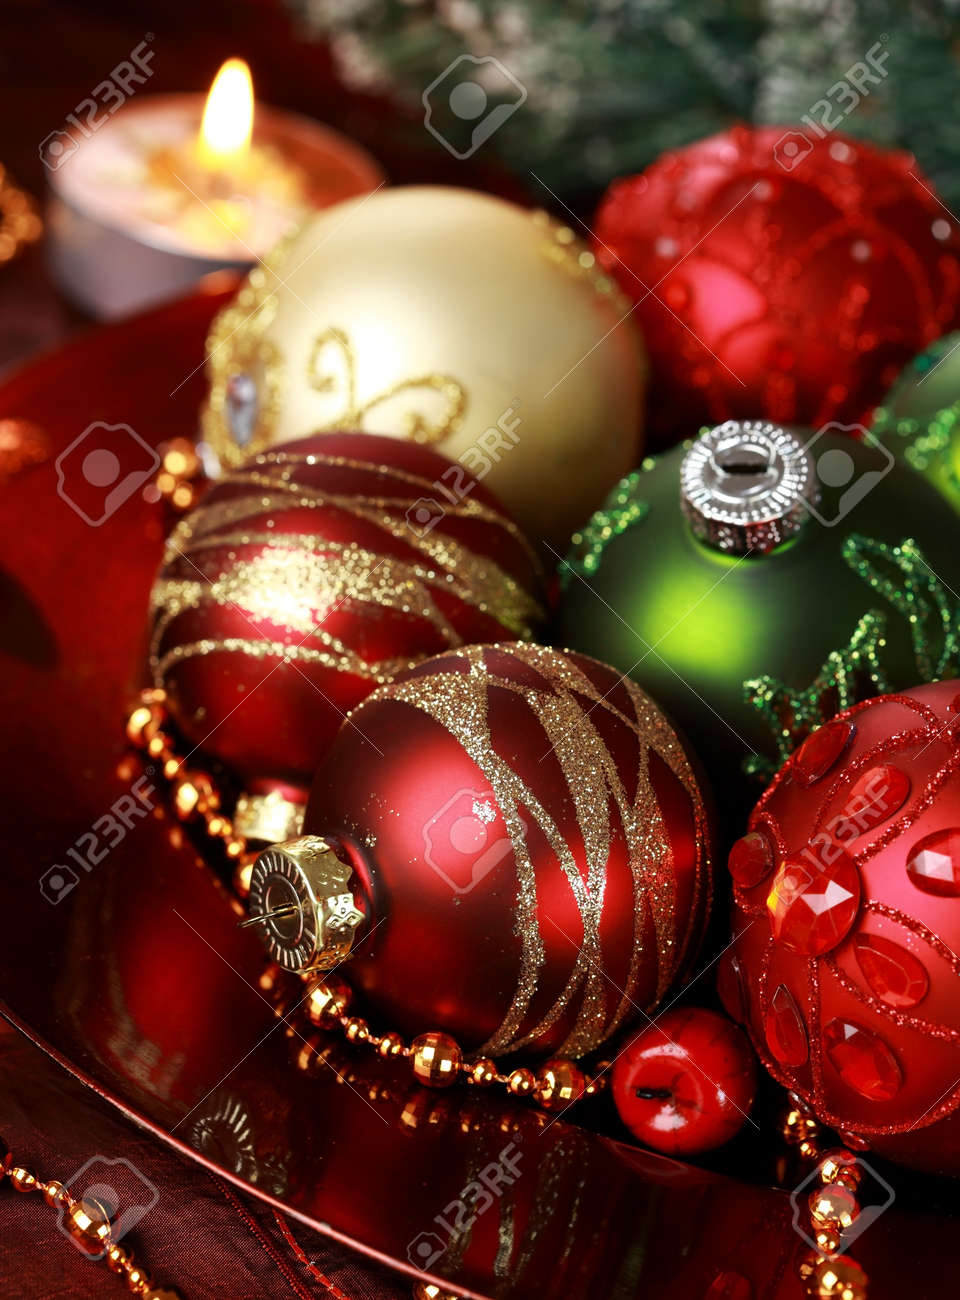 Beautiful Christmas Ornaments beautiful christmas ornaments as table decoration stock photo